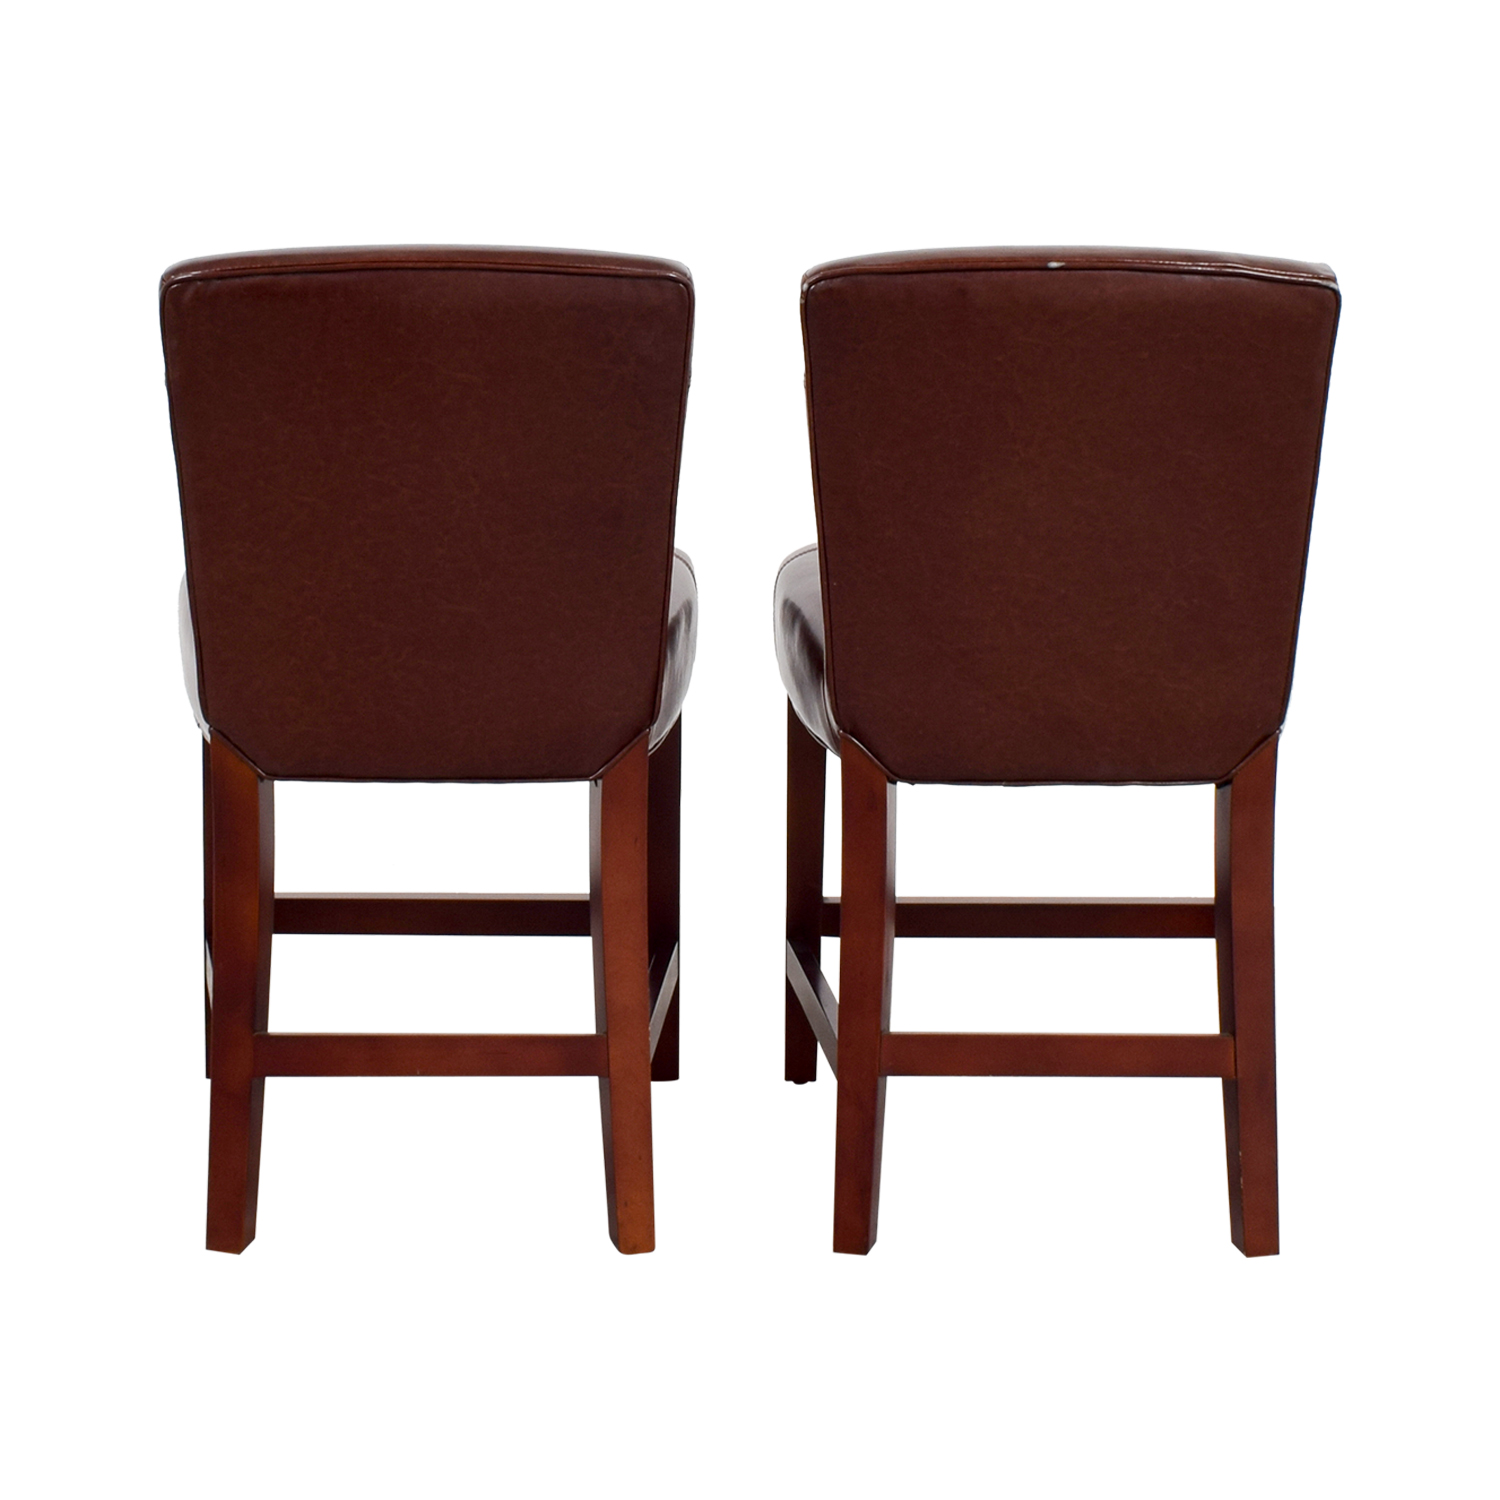 Swell 90 Off Crate Barrel Crate Barrel Brown Leather Bar Stools Chairs Machost Co Dining Chair Design Ideas Machostcouk